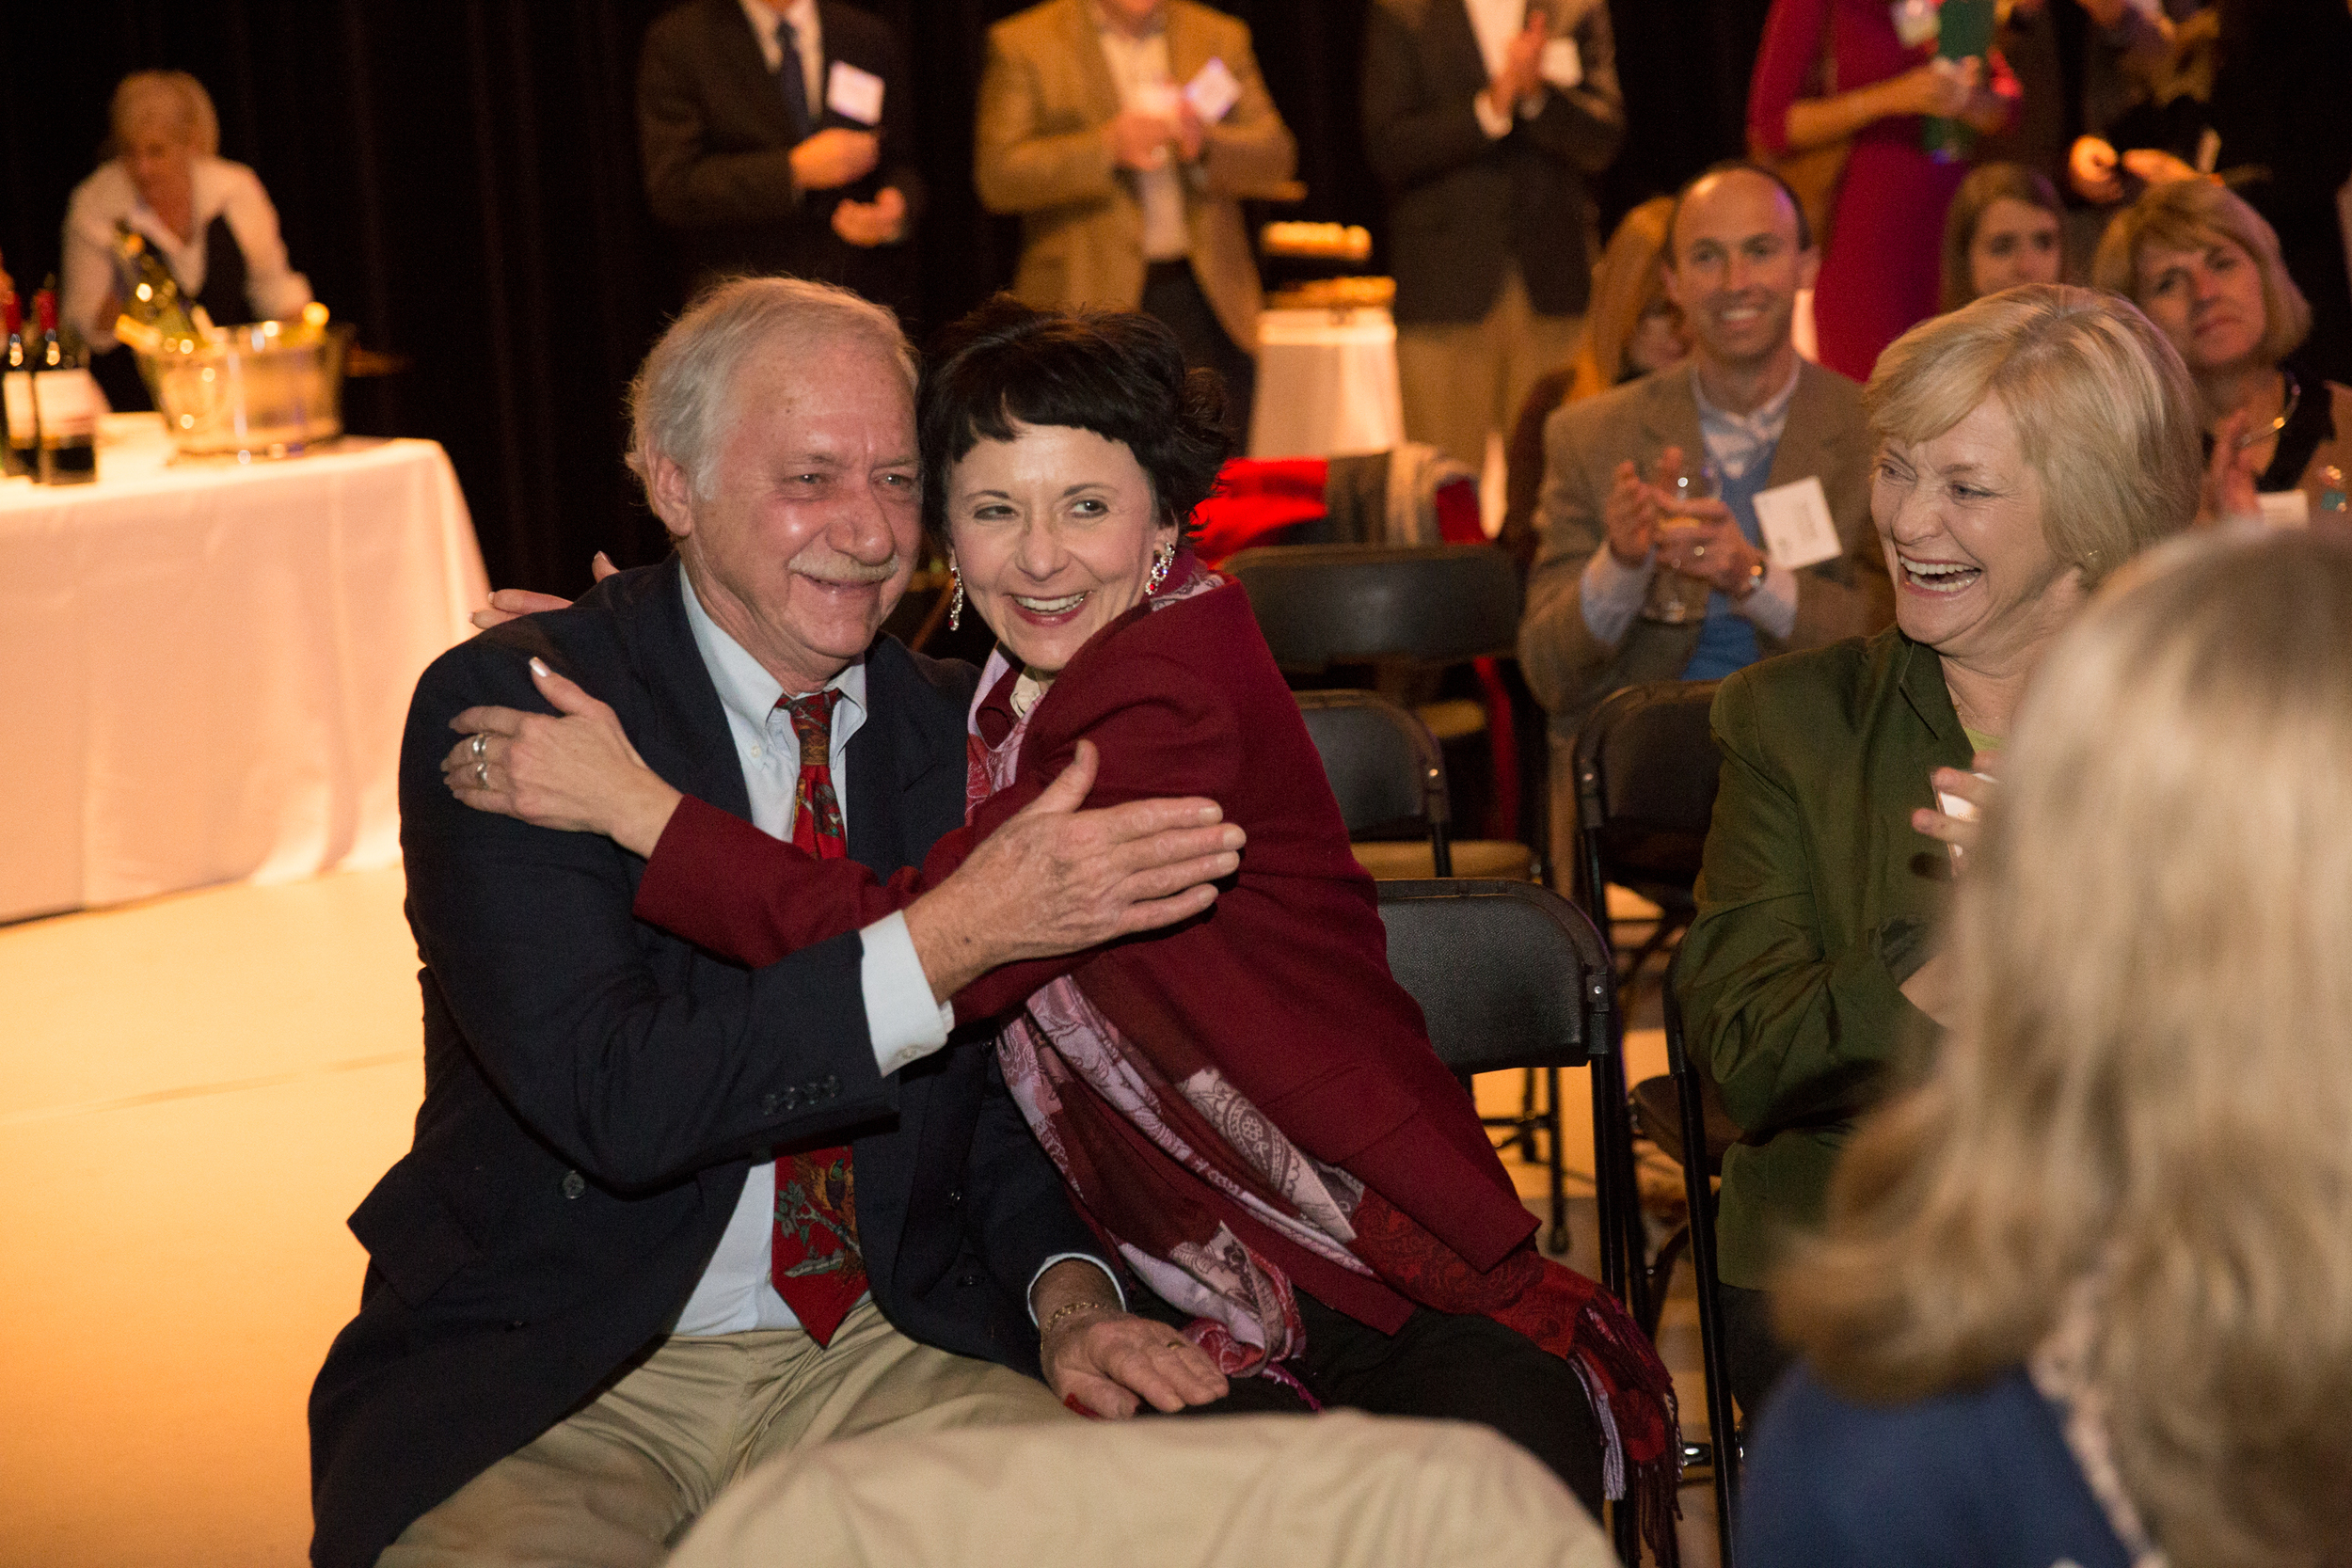 Bob and his wife Cindy immediately after the announcement sitting next to a very happy Sally Sears.We are thrilled Bob received the recognition he deserves and that we have received such a generous donation. One of the best parts about this is that it was really all thanks to you for your vote!